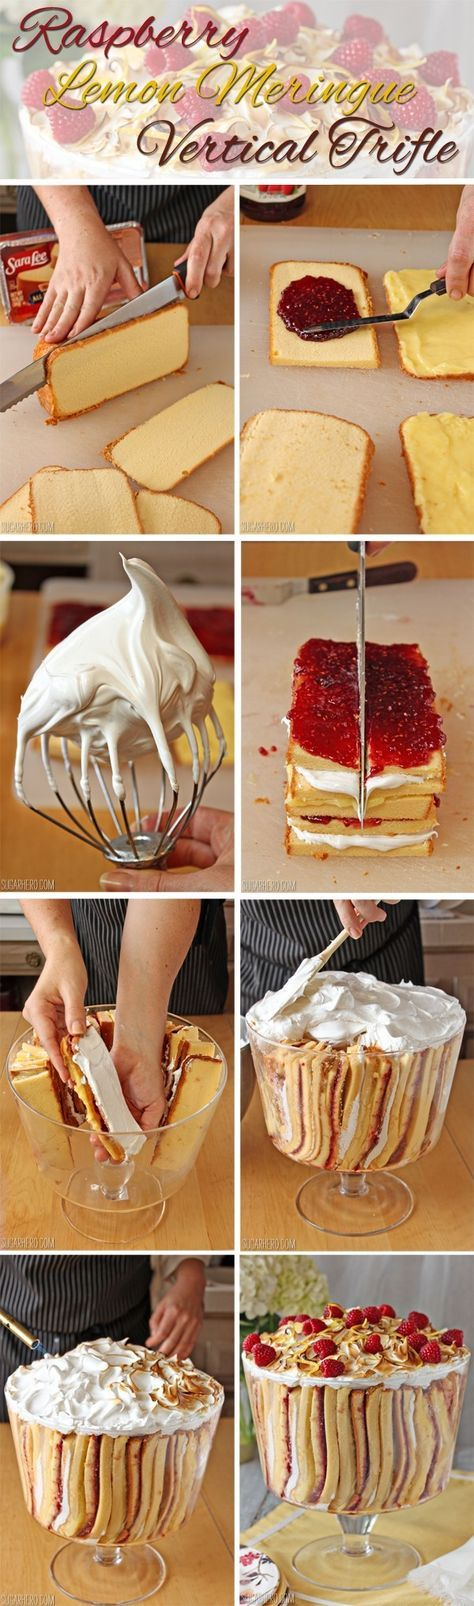 How to Make Raspberry Lemon Meringue Trifle - Sara Lee pound cake with homemade lemon curd, meringue and raspberry jam